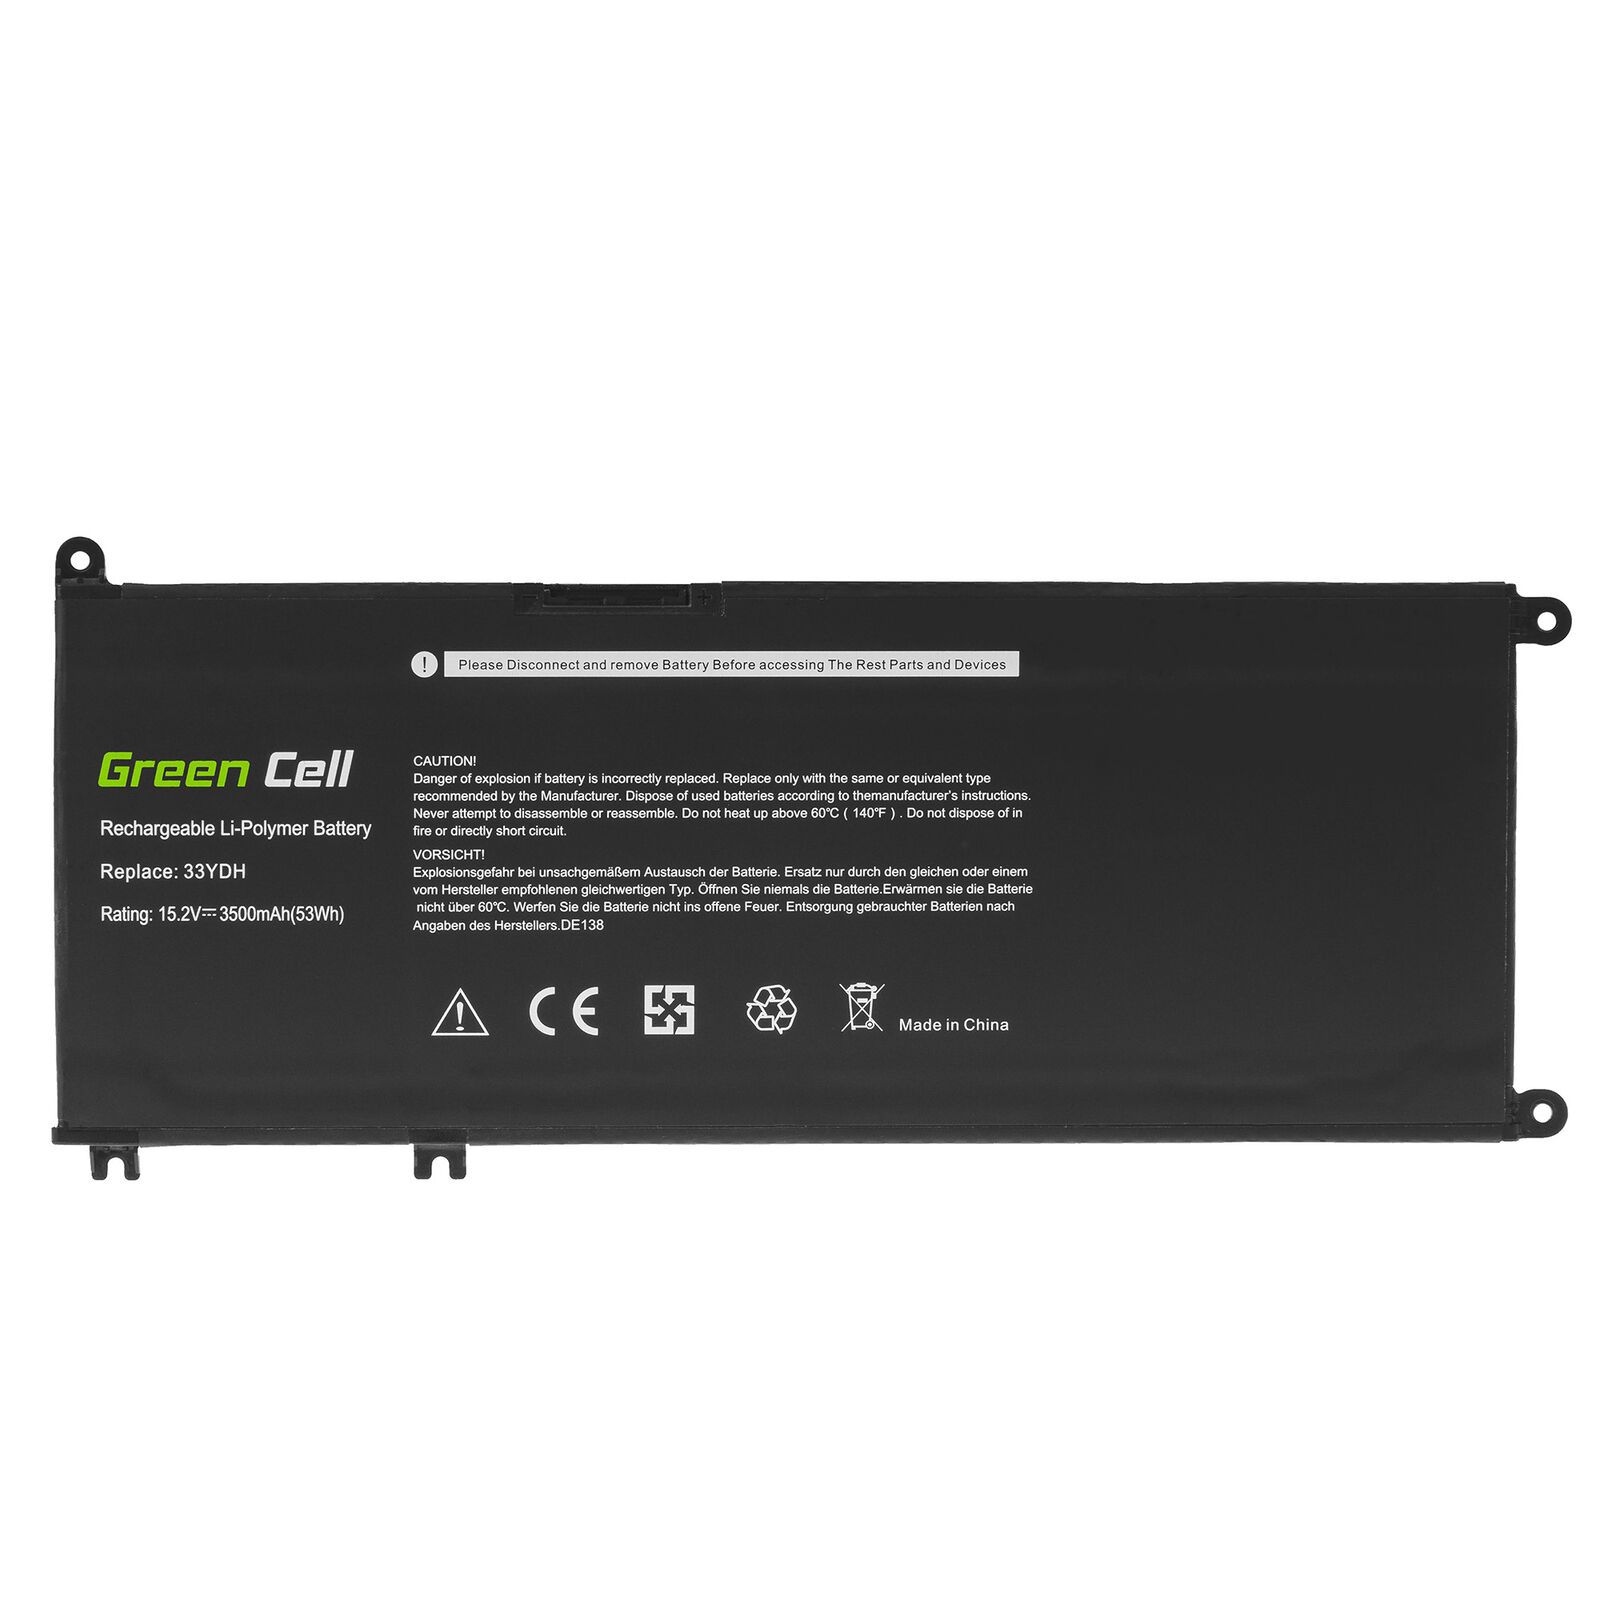 Accu voor Dell G3 3579,G3 3779,G5 5587,G7 7588 99NF2 33YDH W7NKD(compatible)